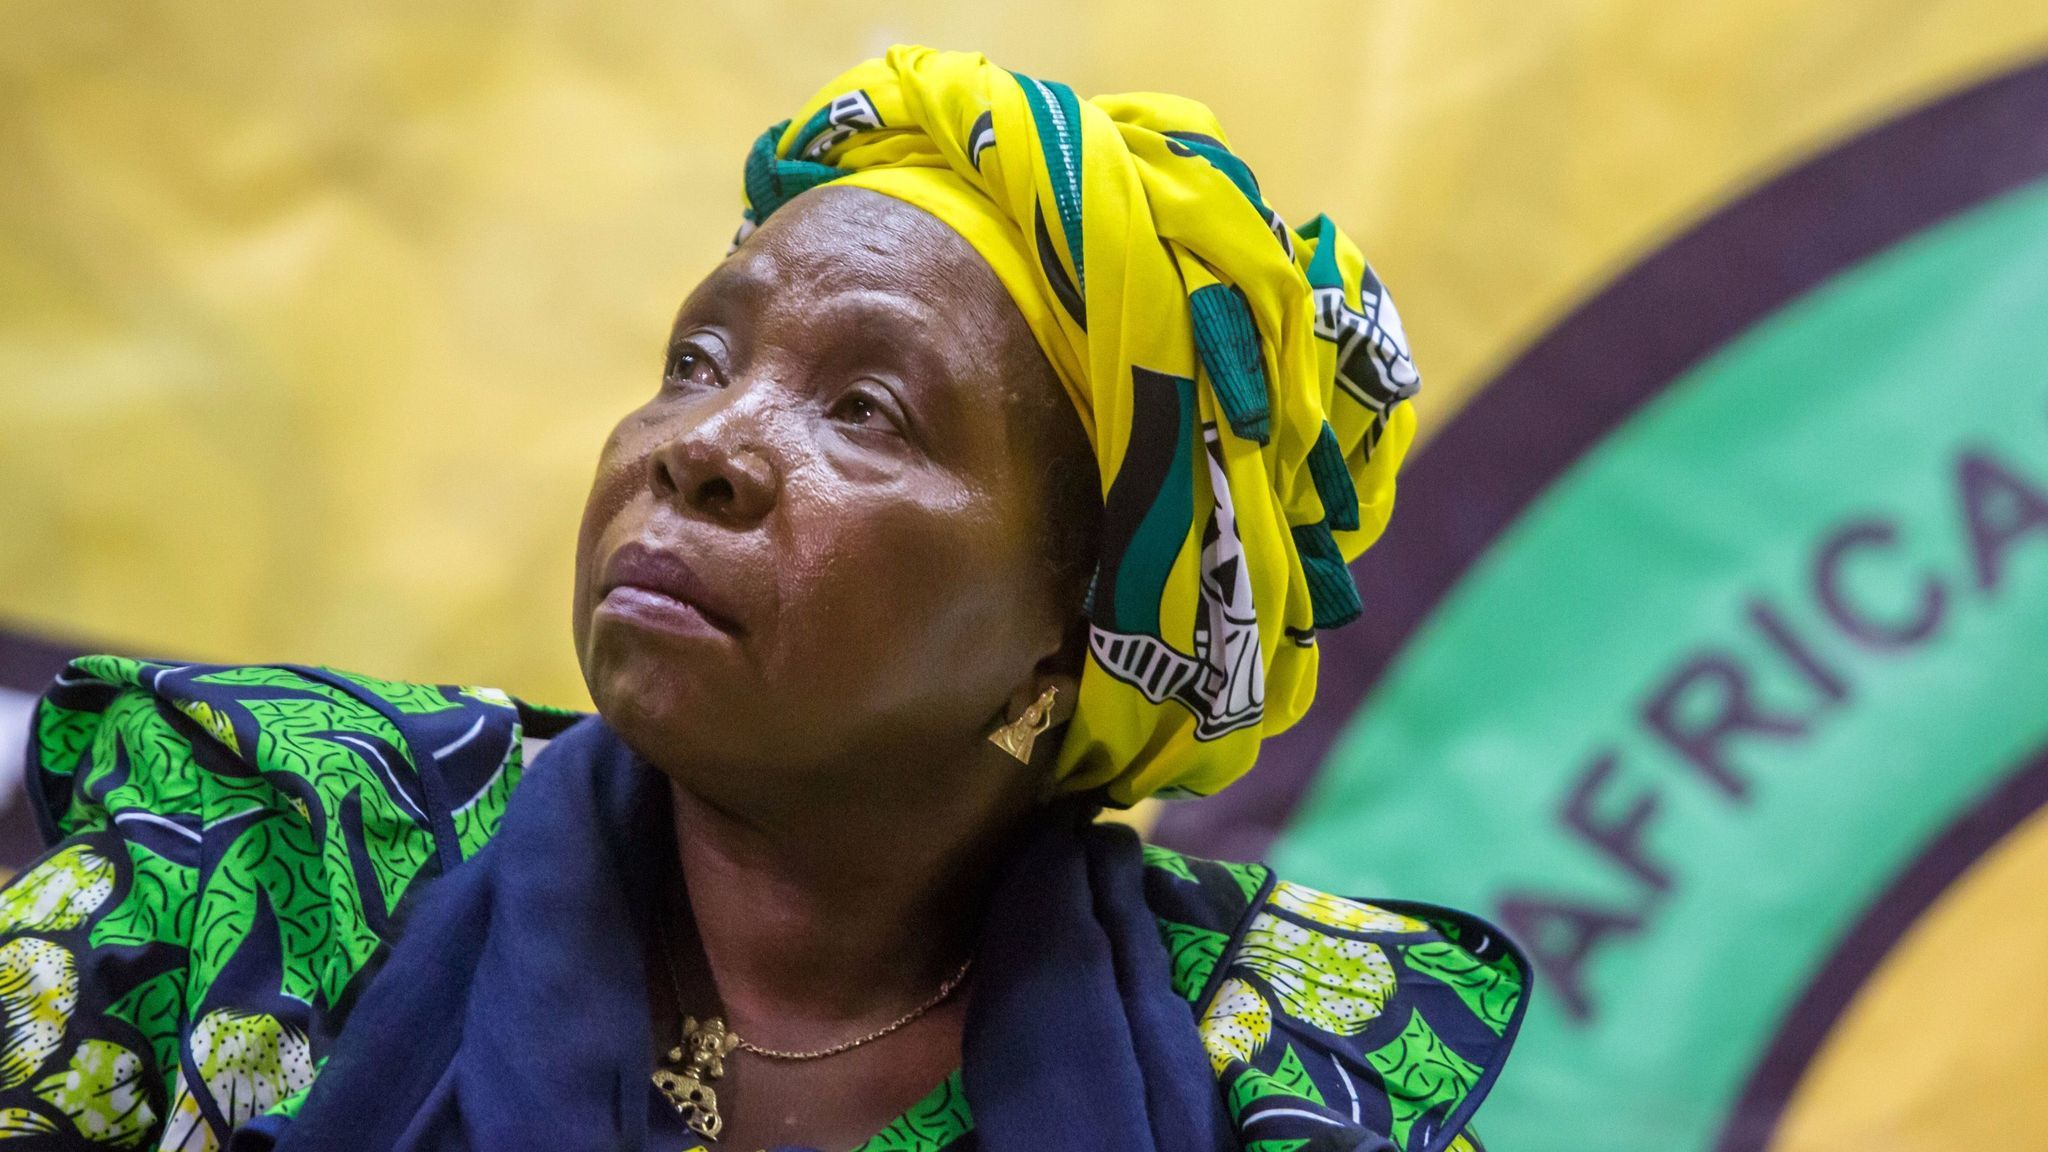 South African presidential contender and former chairwoman of the African Union Commission Nkosazana Dlamini-Zuma at a meeting of the African National Congress Youth League last month. Zuma's critics fear that if elected she would try to shield him from prosecution.